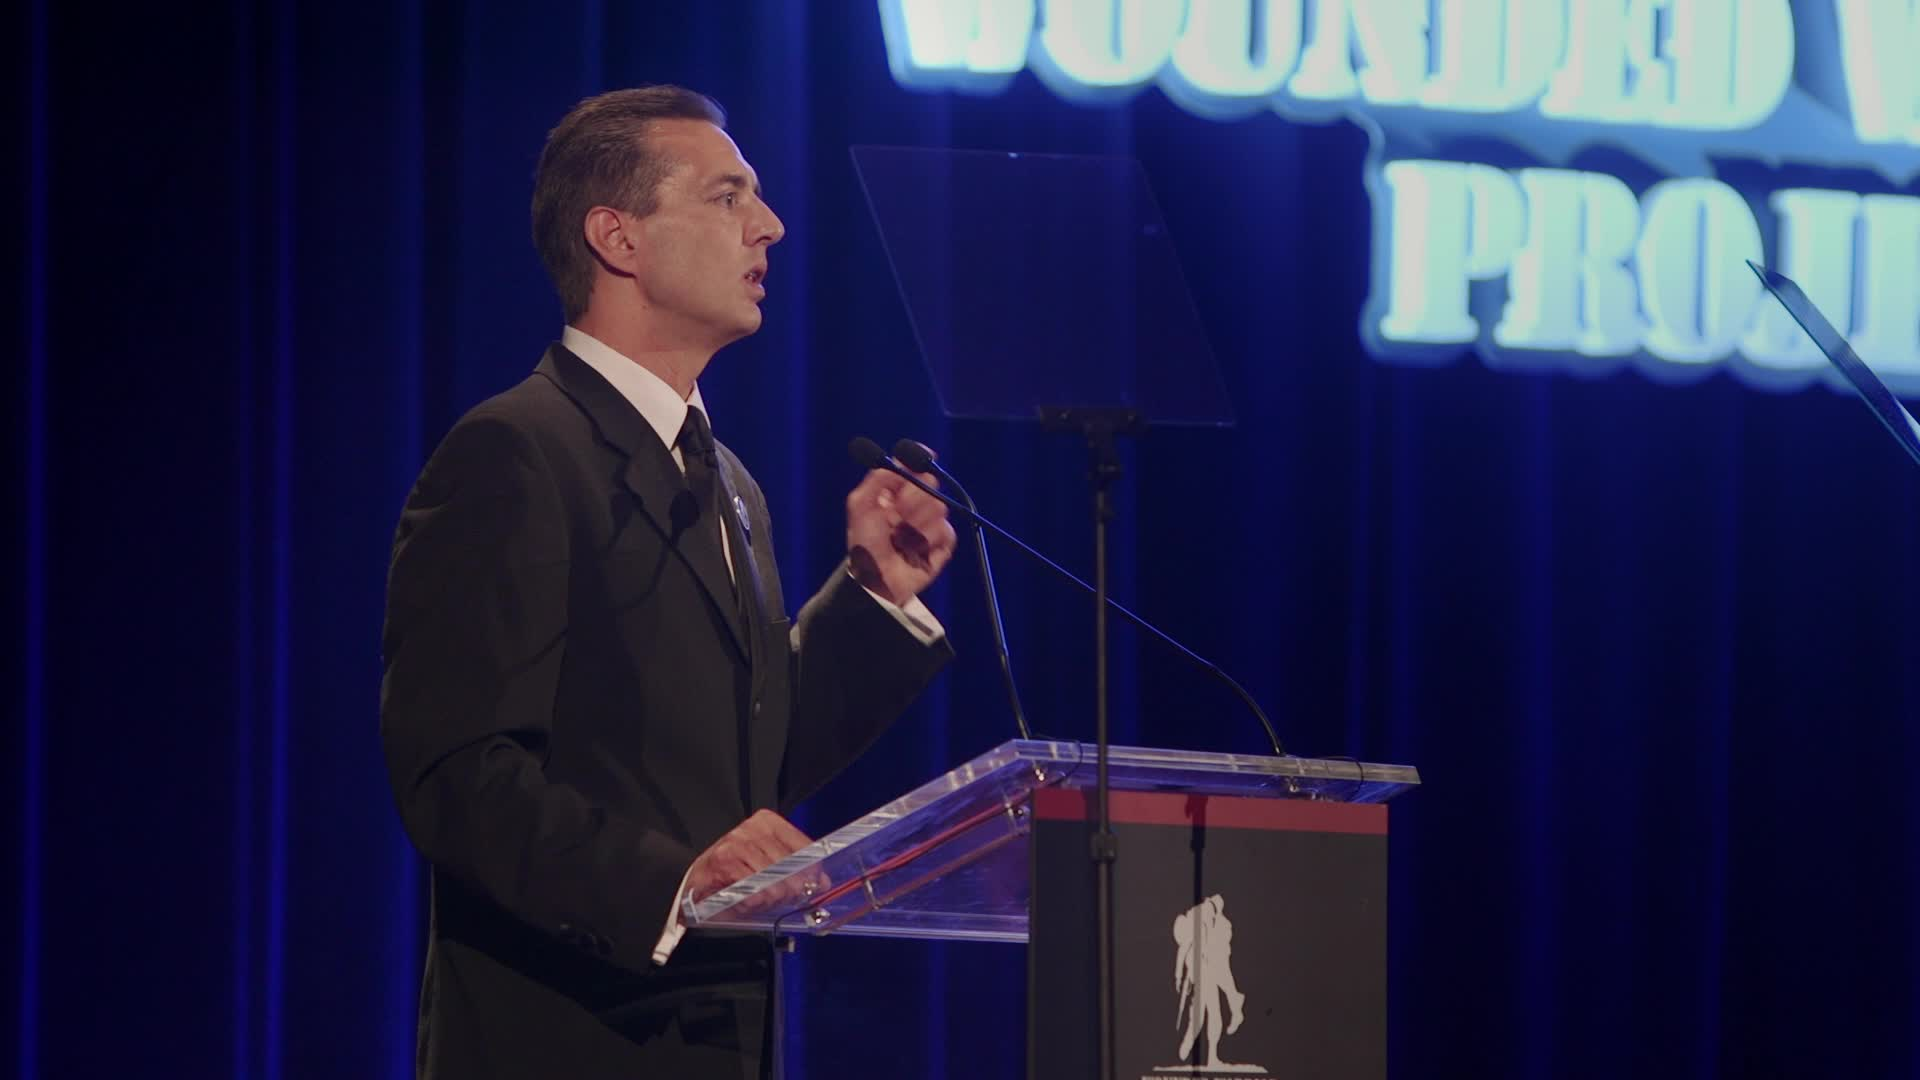 WWP CEO Steve Nardizzi announces hospital collaboration initiative at the Courage Awards and Benefit Dinner in New York.